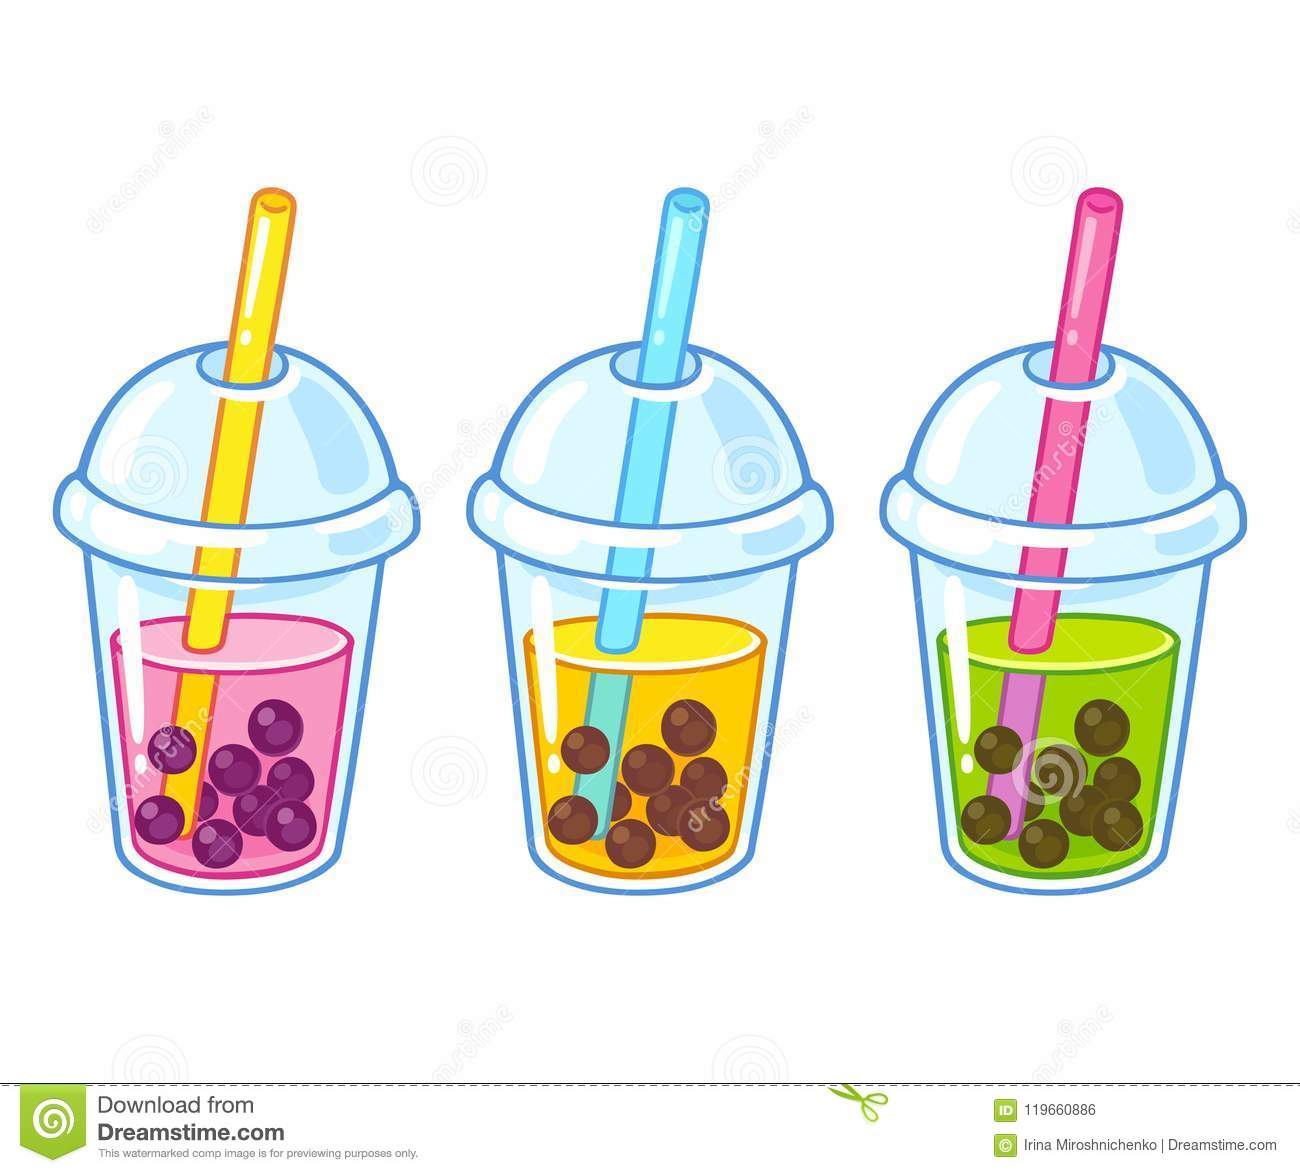 It is a graphic of Monster Boba Tea Drawing